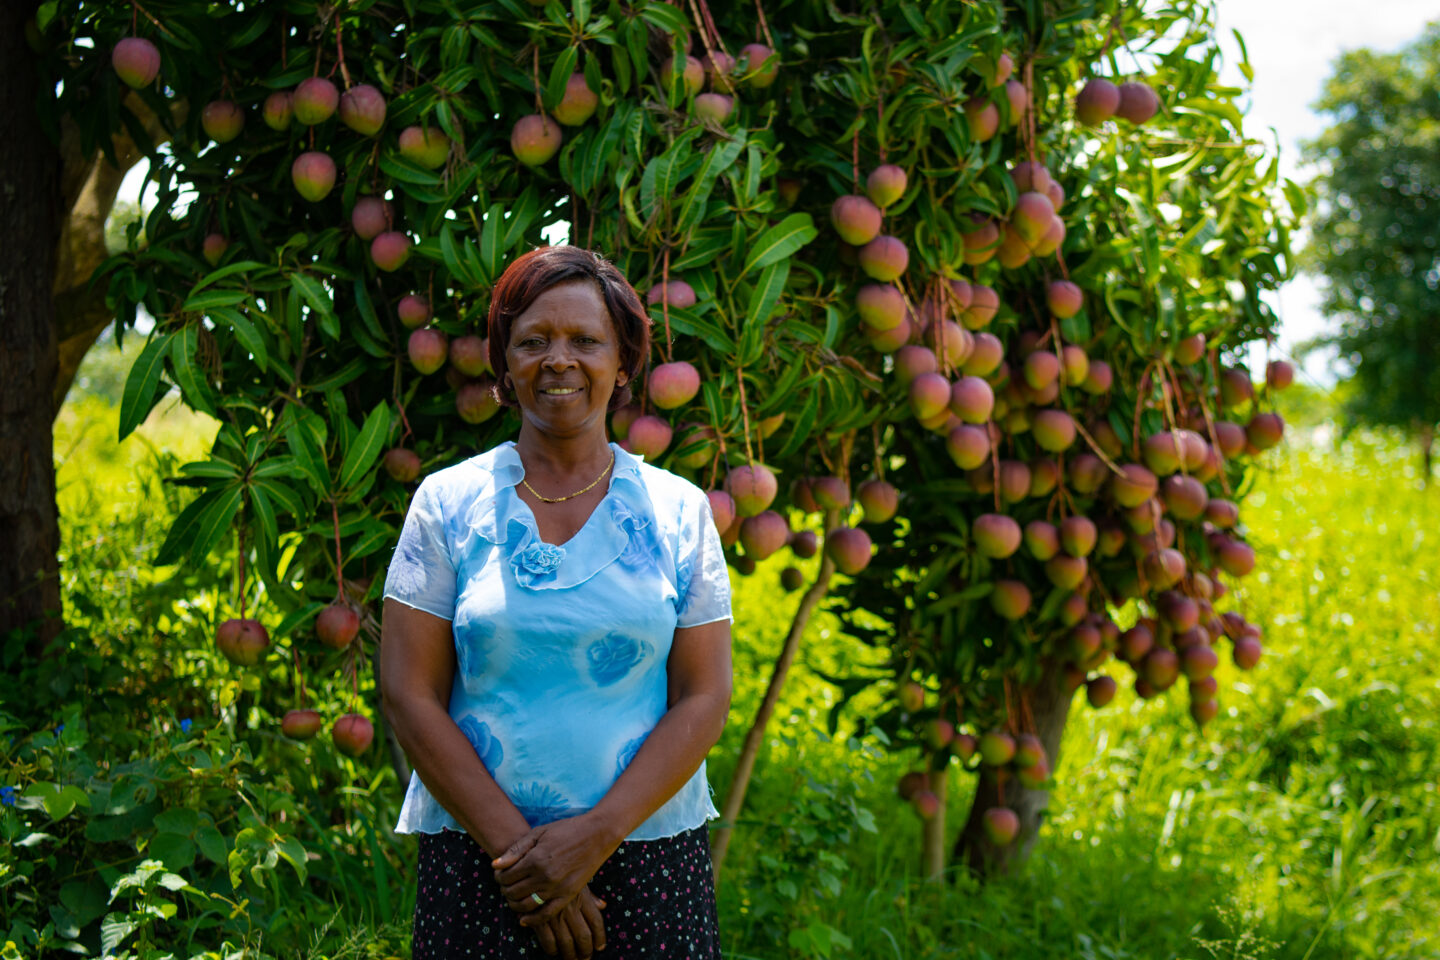 Elizabeth Muia began growing mangoes in 2008 on her farm in Kyumu village, Machakos County. Photo credit: Paukwa House